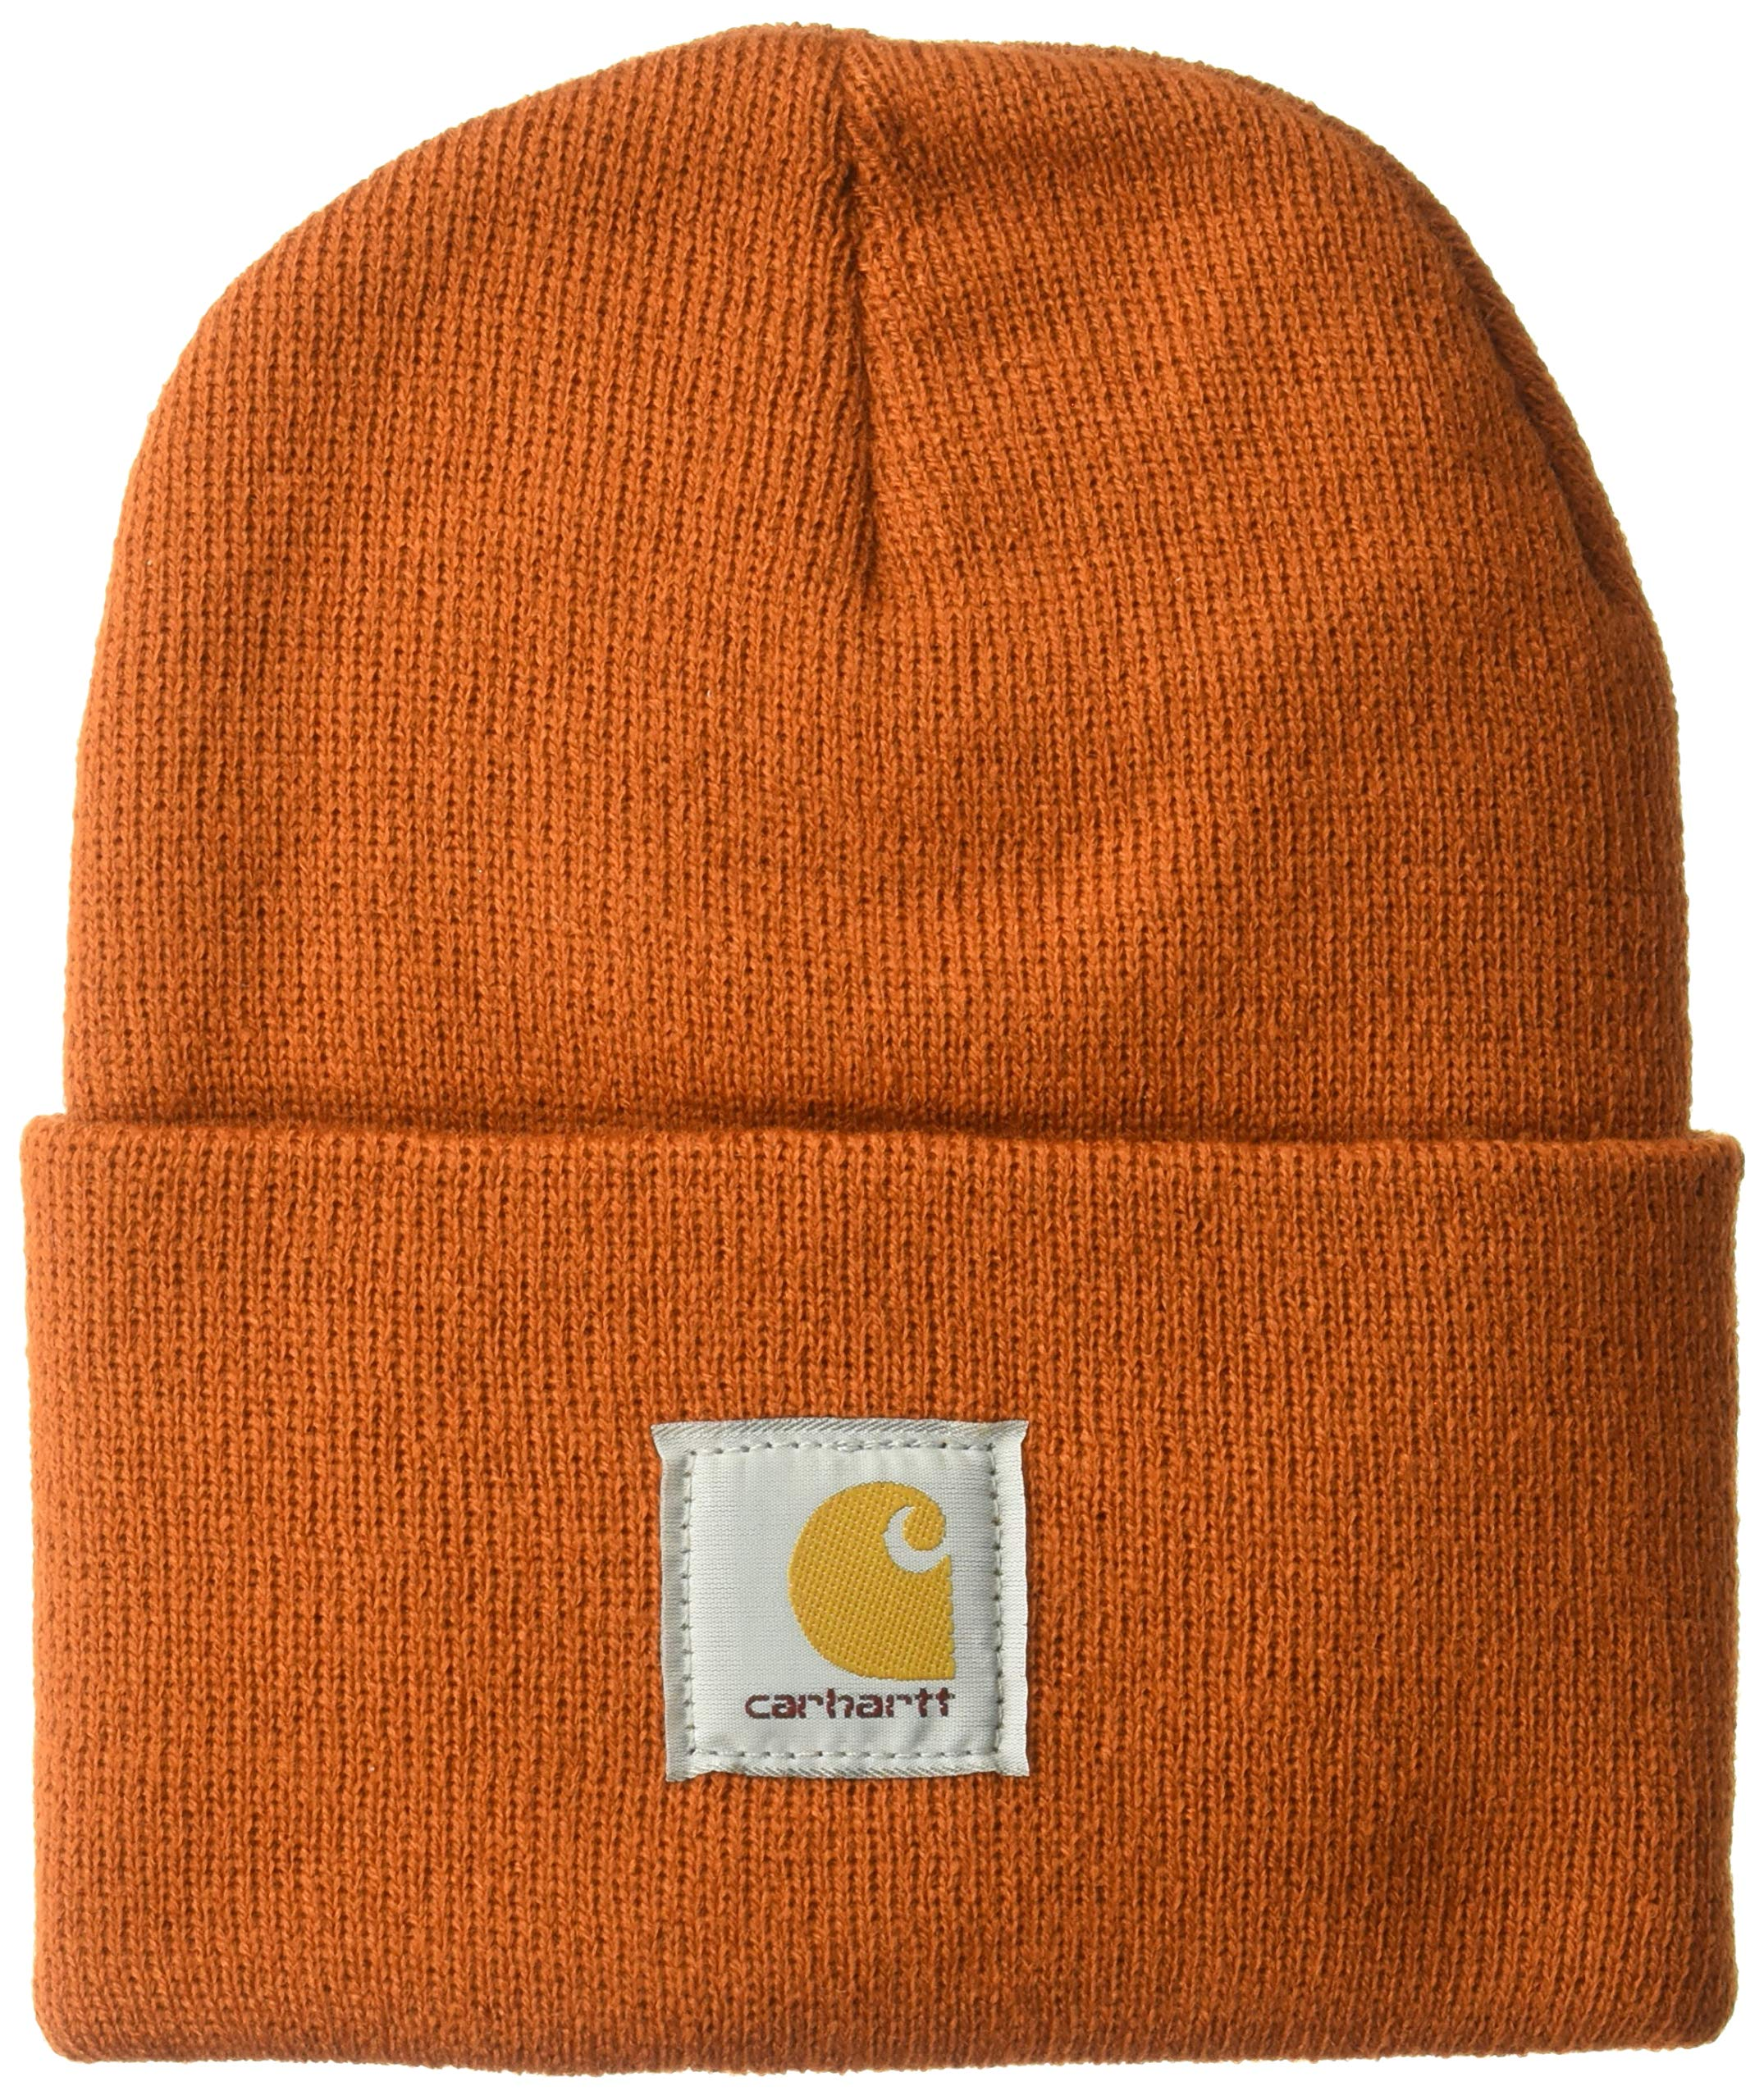 Carhartt Men's Acrylic Watch Hat A18, Umber, One Size by Carhartt